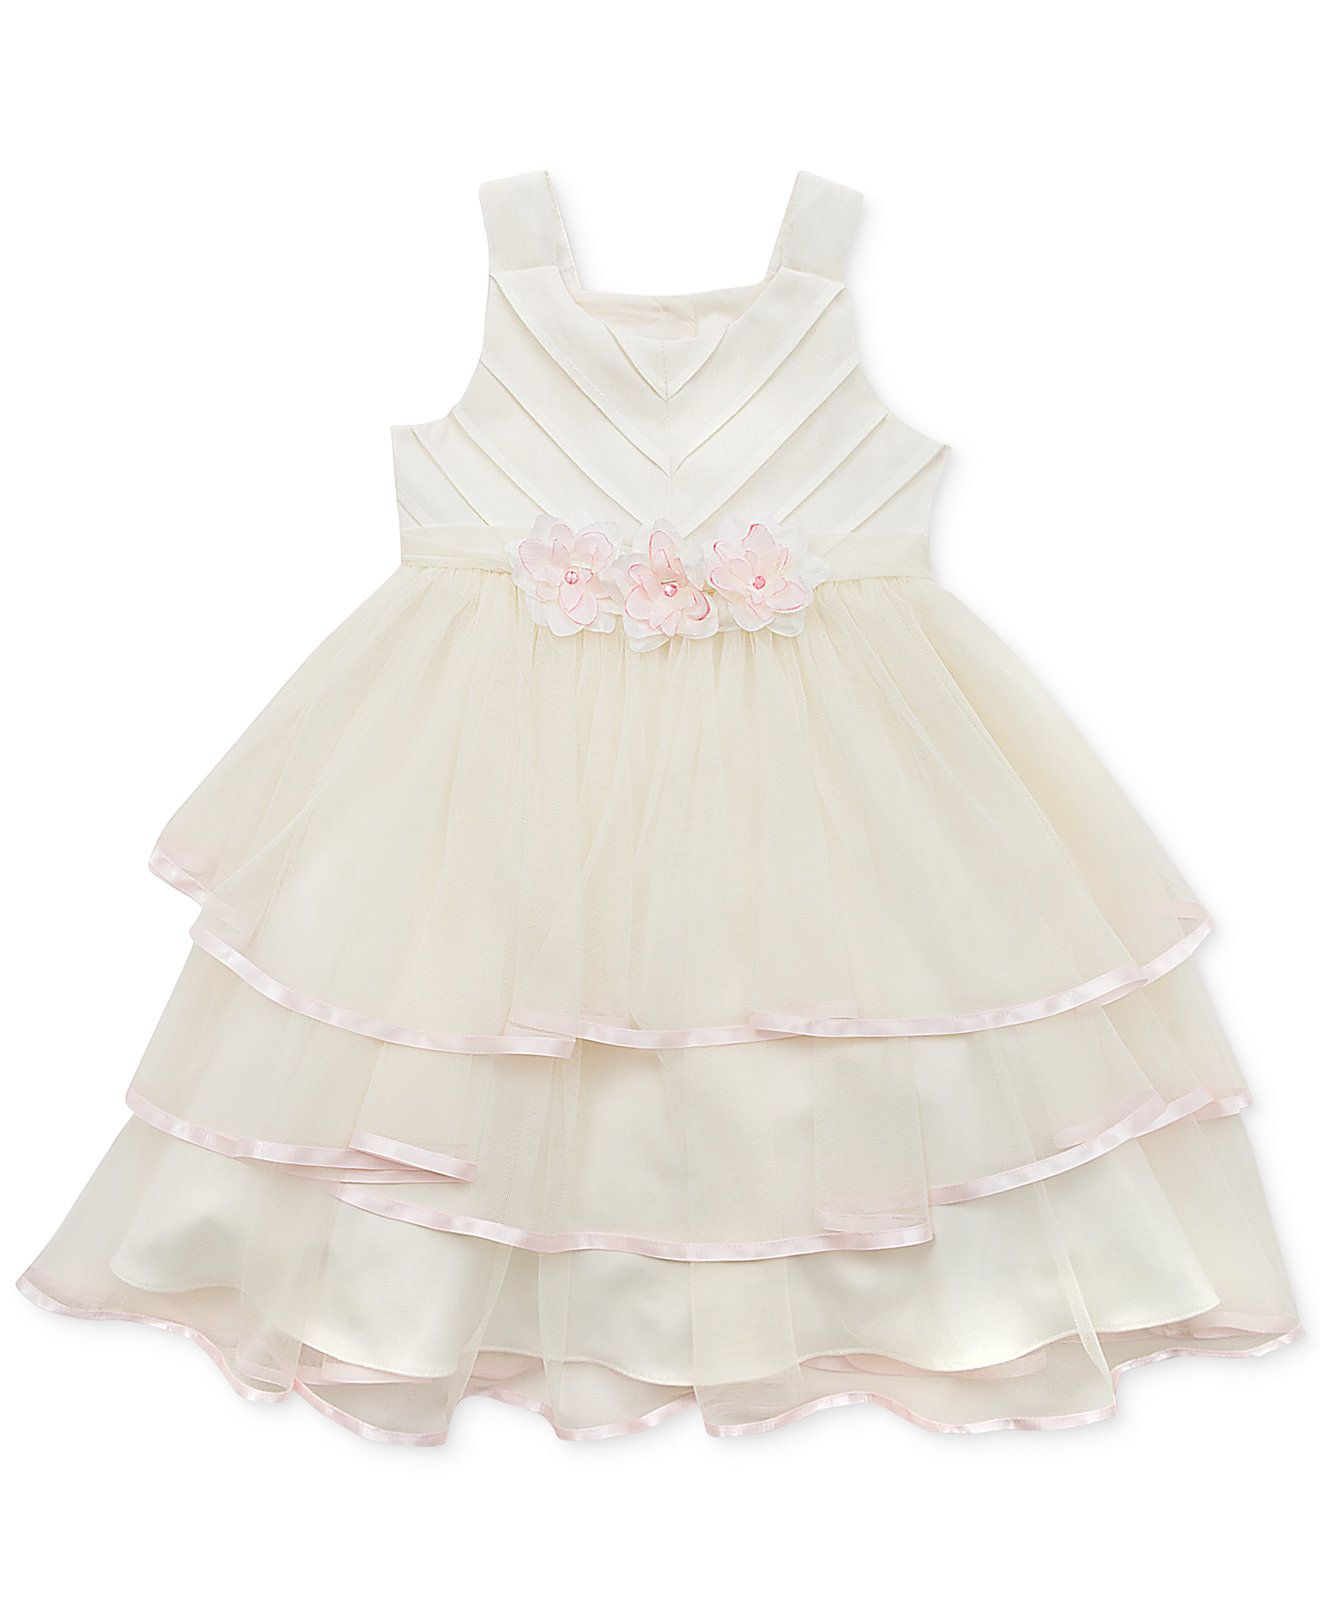 Rare editions little girlsu tiered dress kids dresses u dresswear